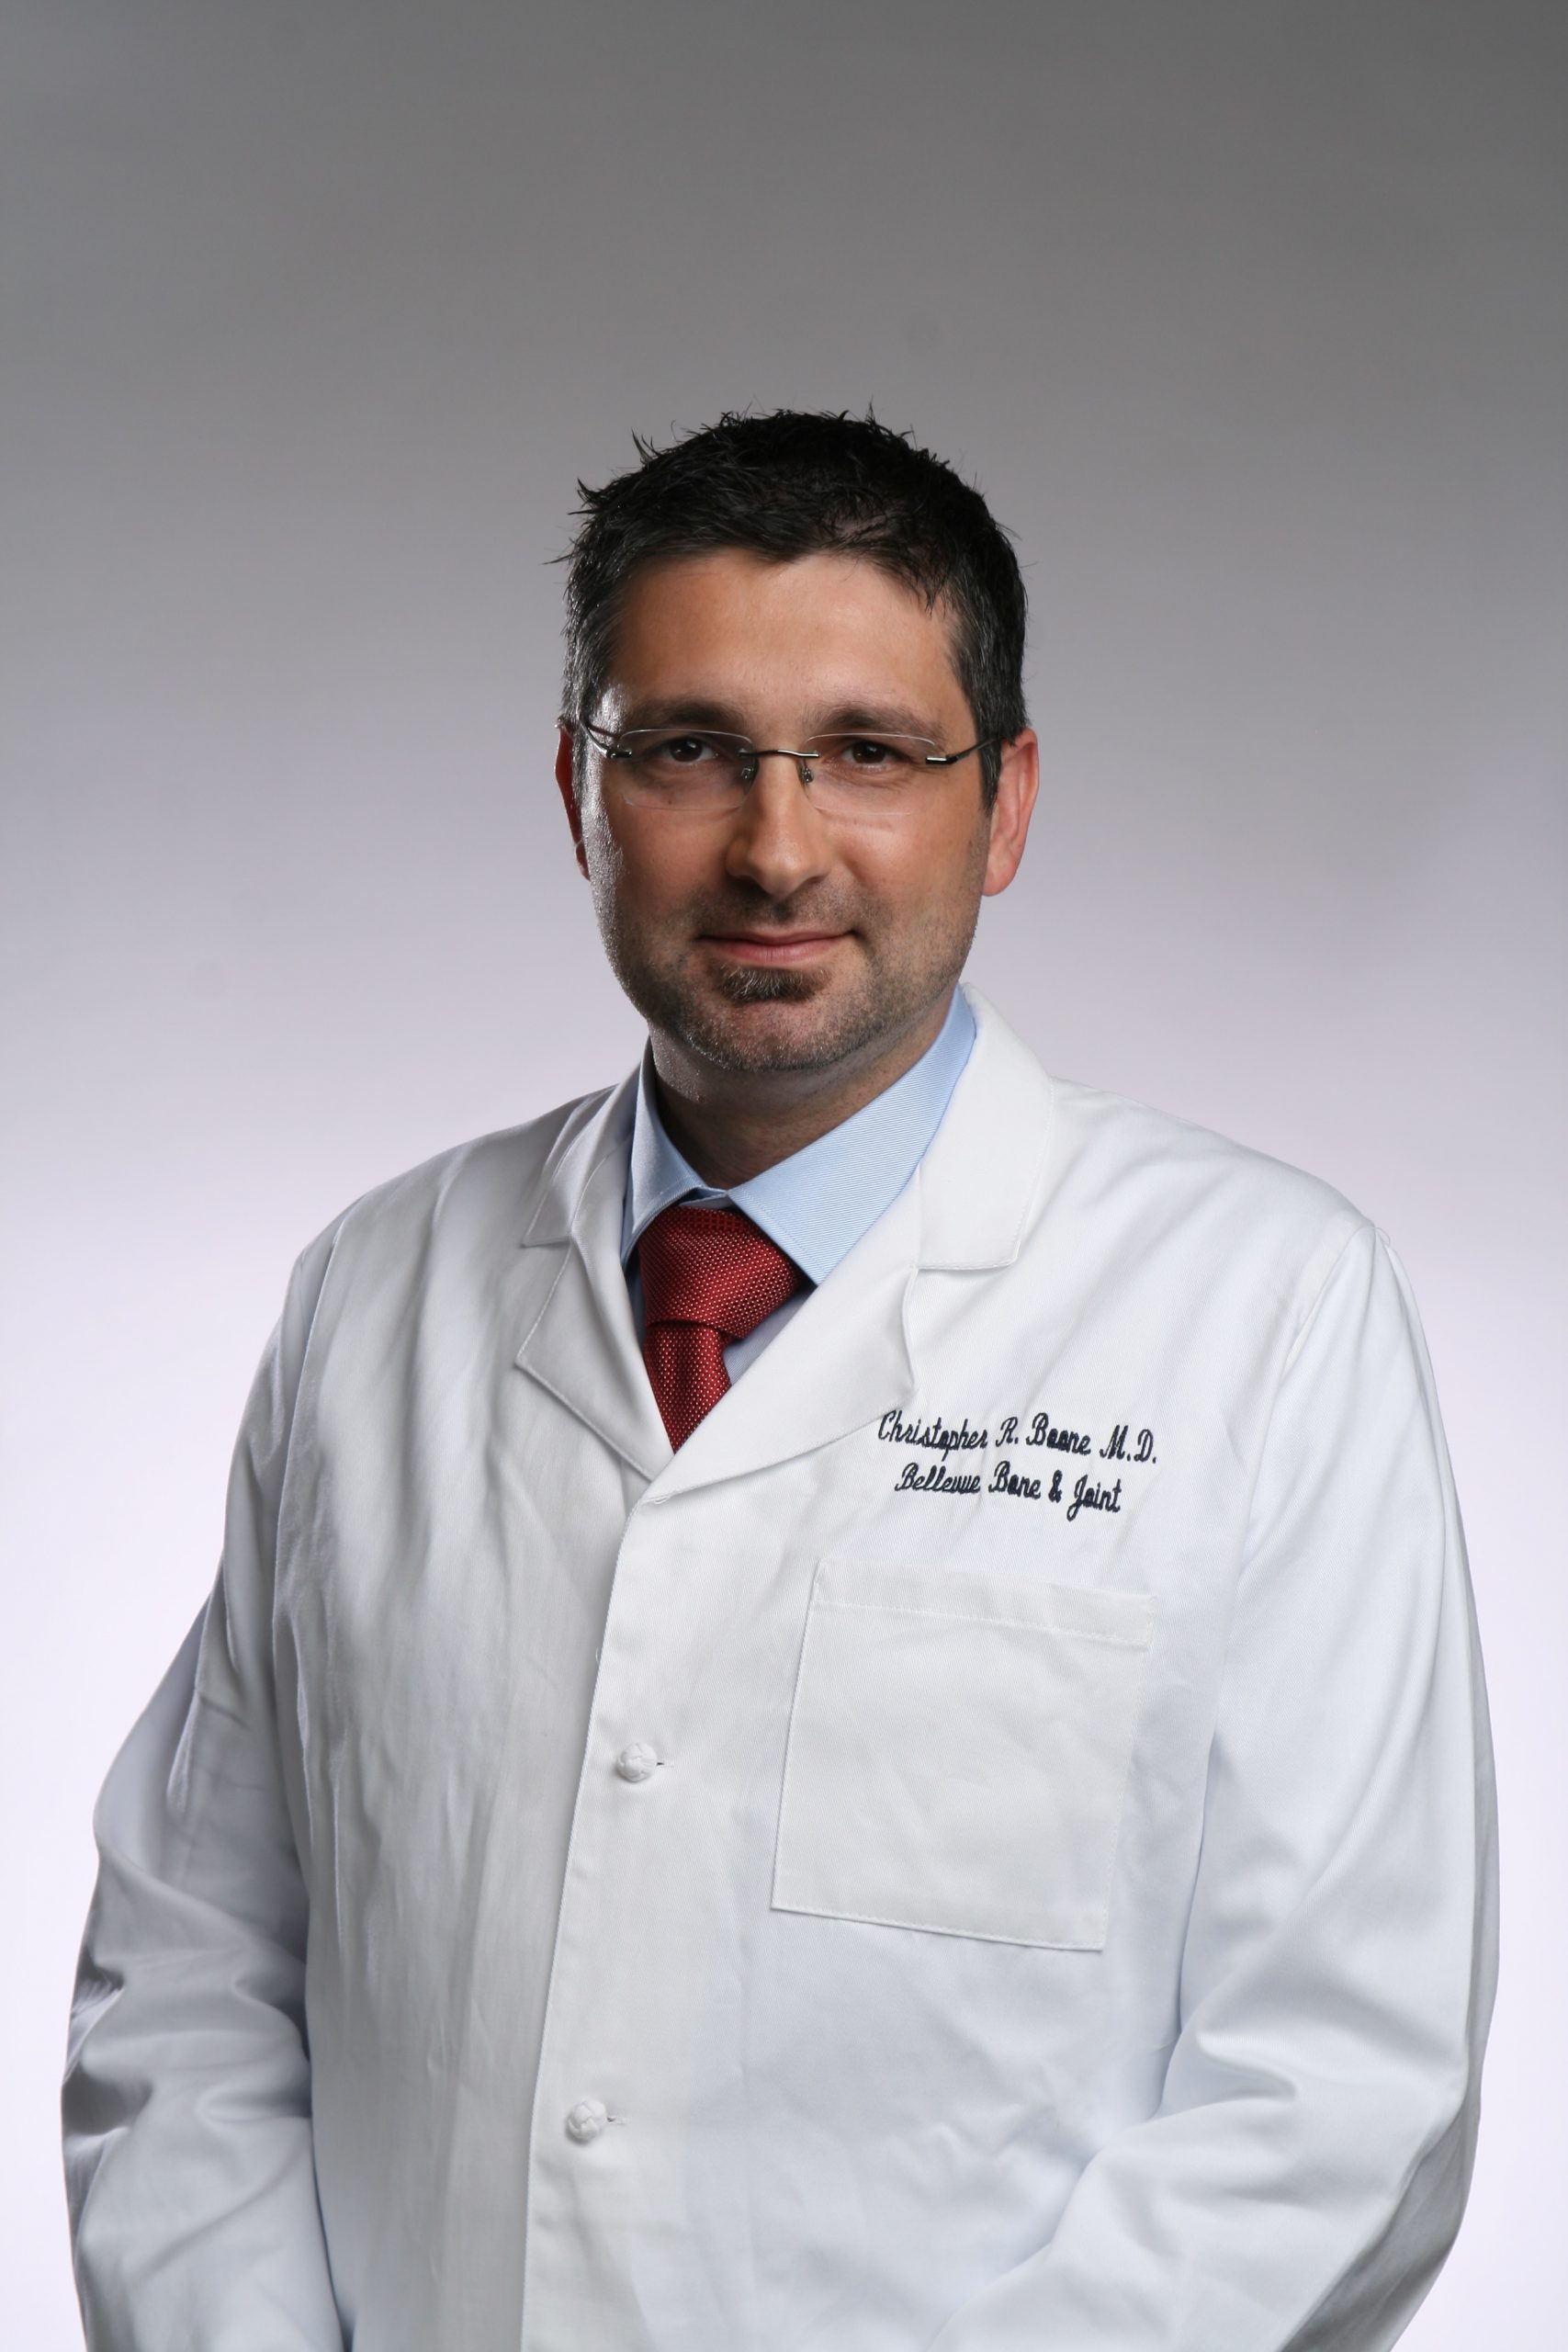 Christopher R. Boone, MD